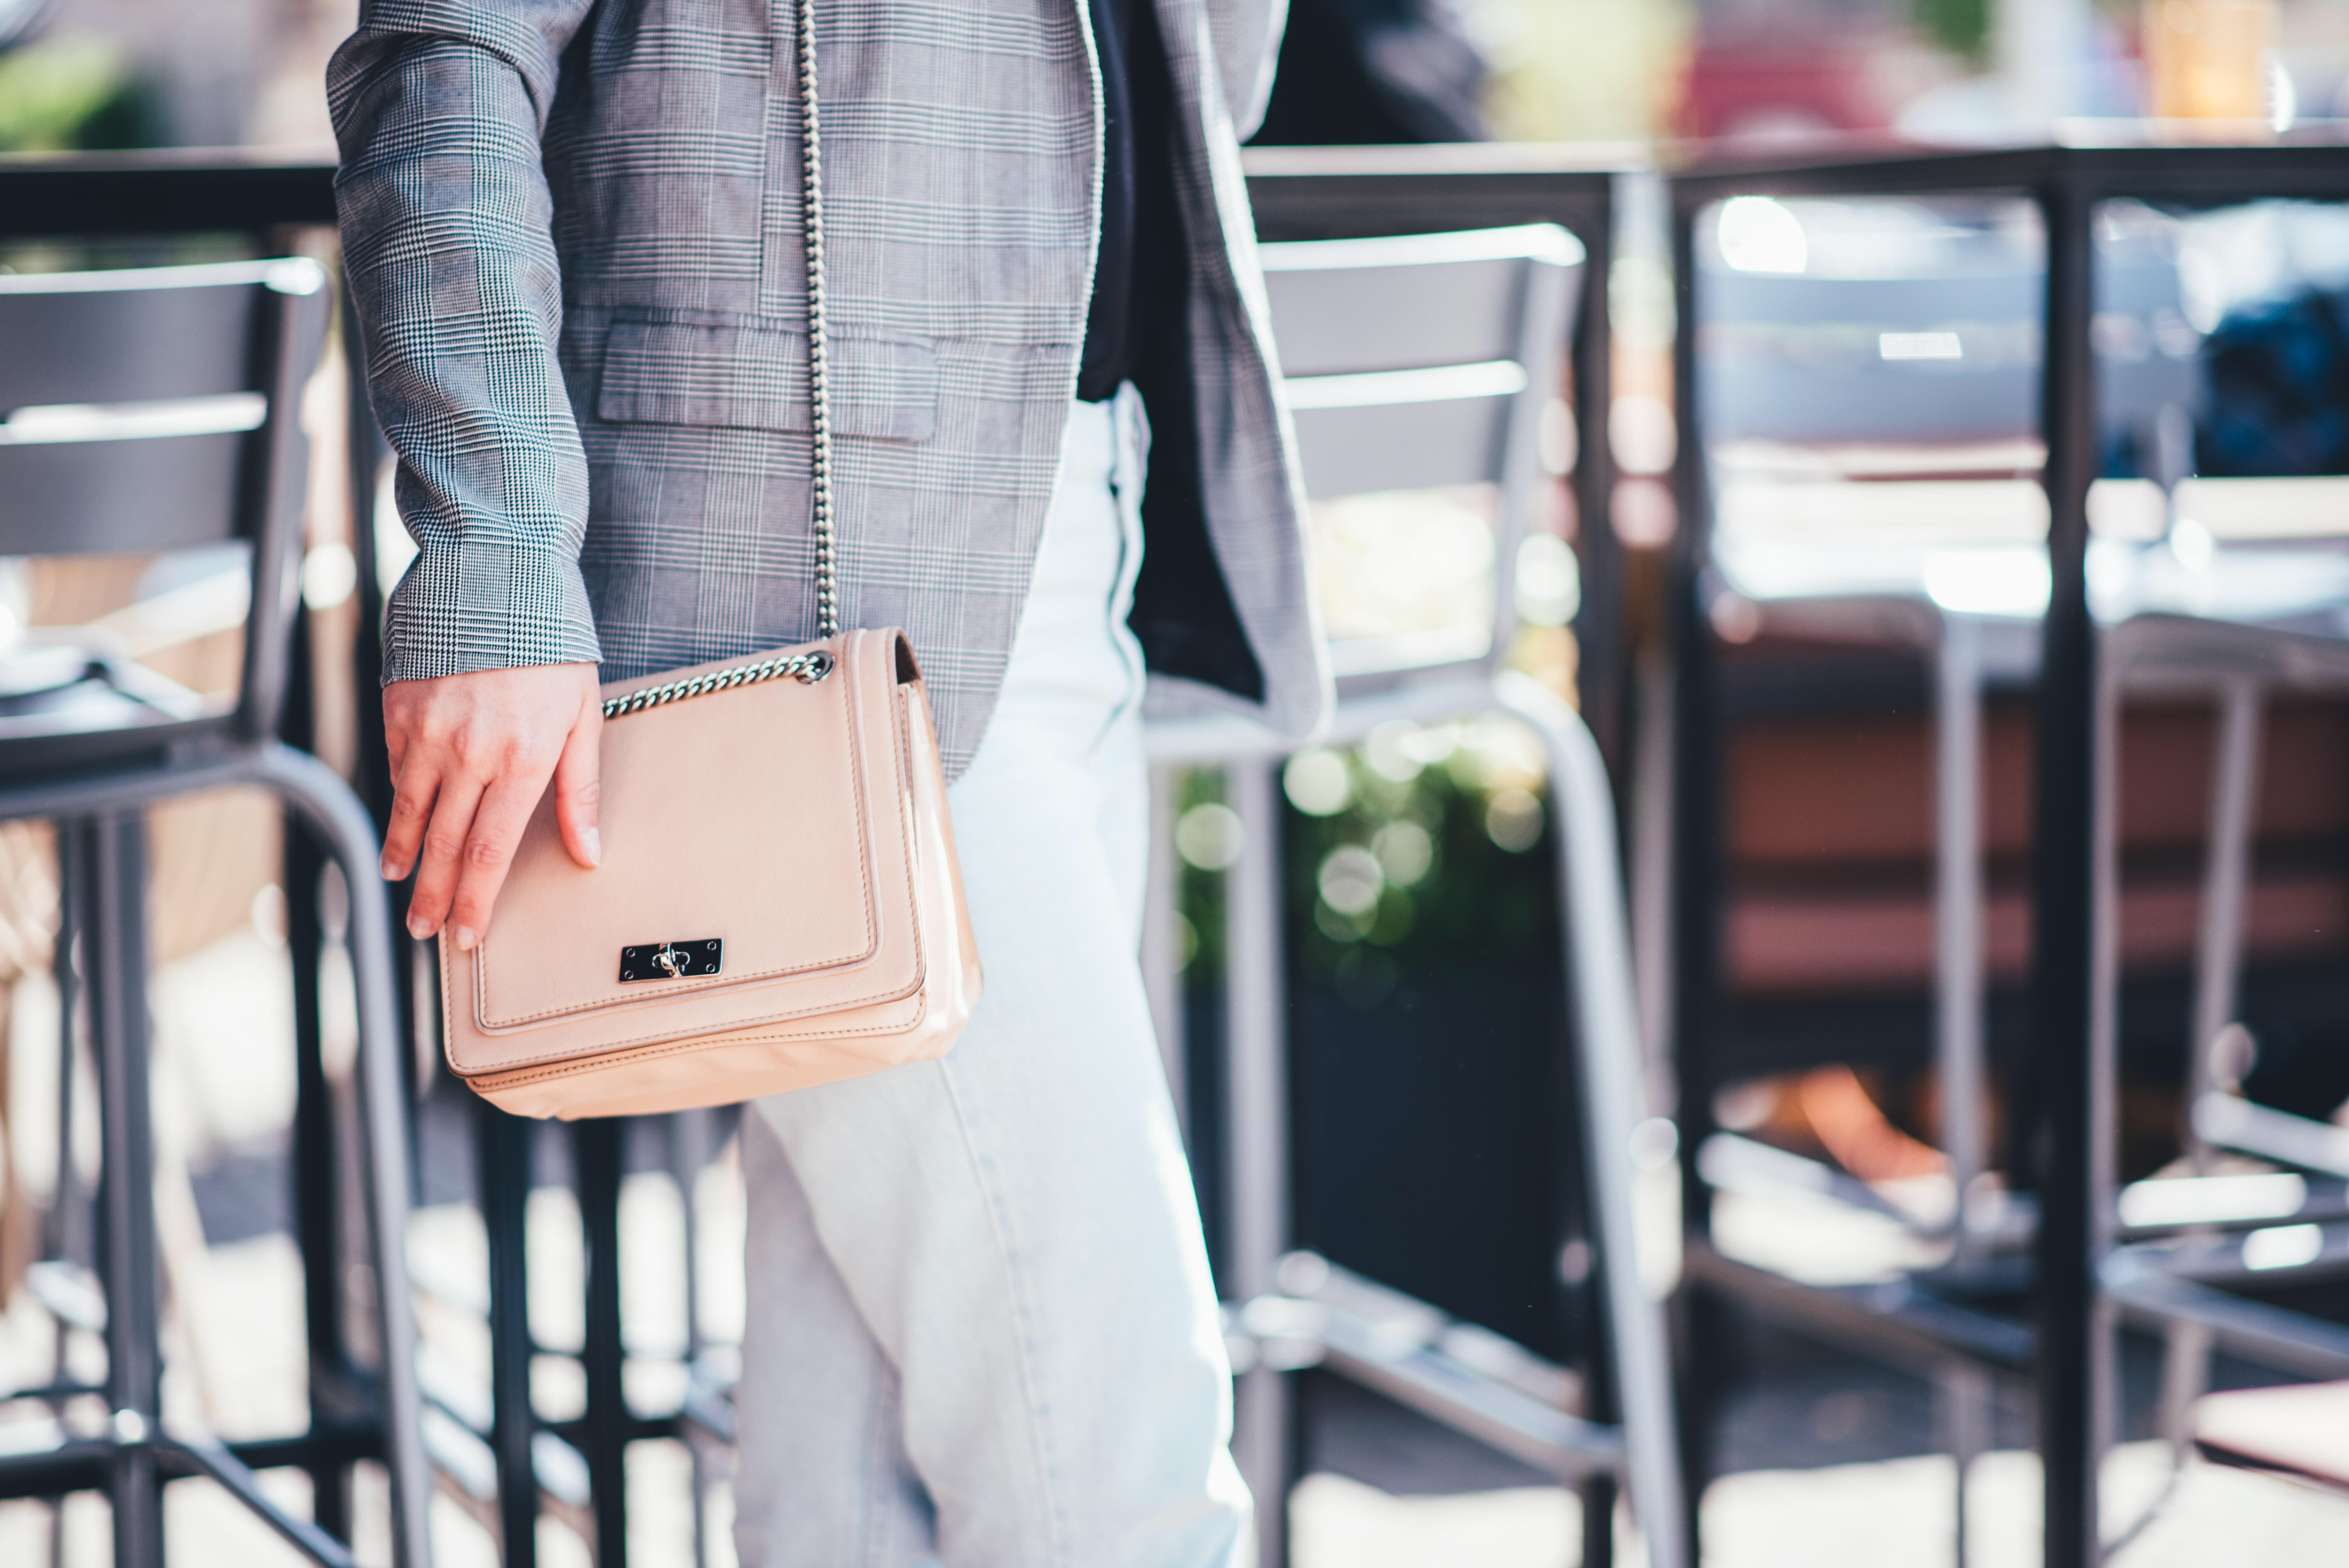 Rabeanco, bag, bags, tas, tassen, leer, leather, ootd, outfit, accessoire, accessoires, xmariekie, blog, blogger